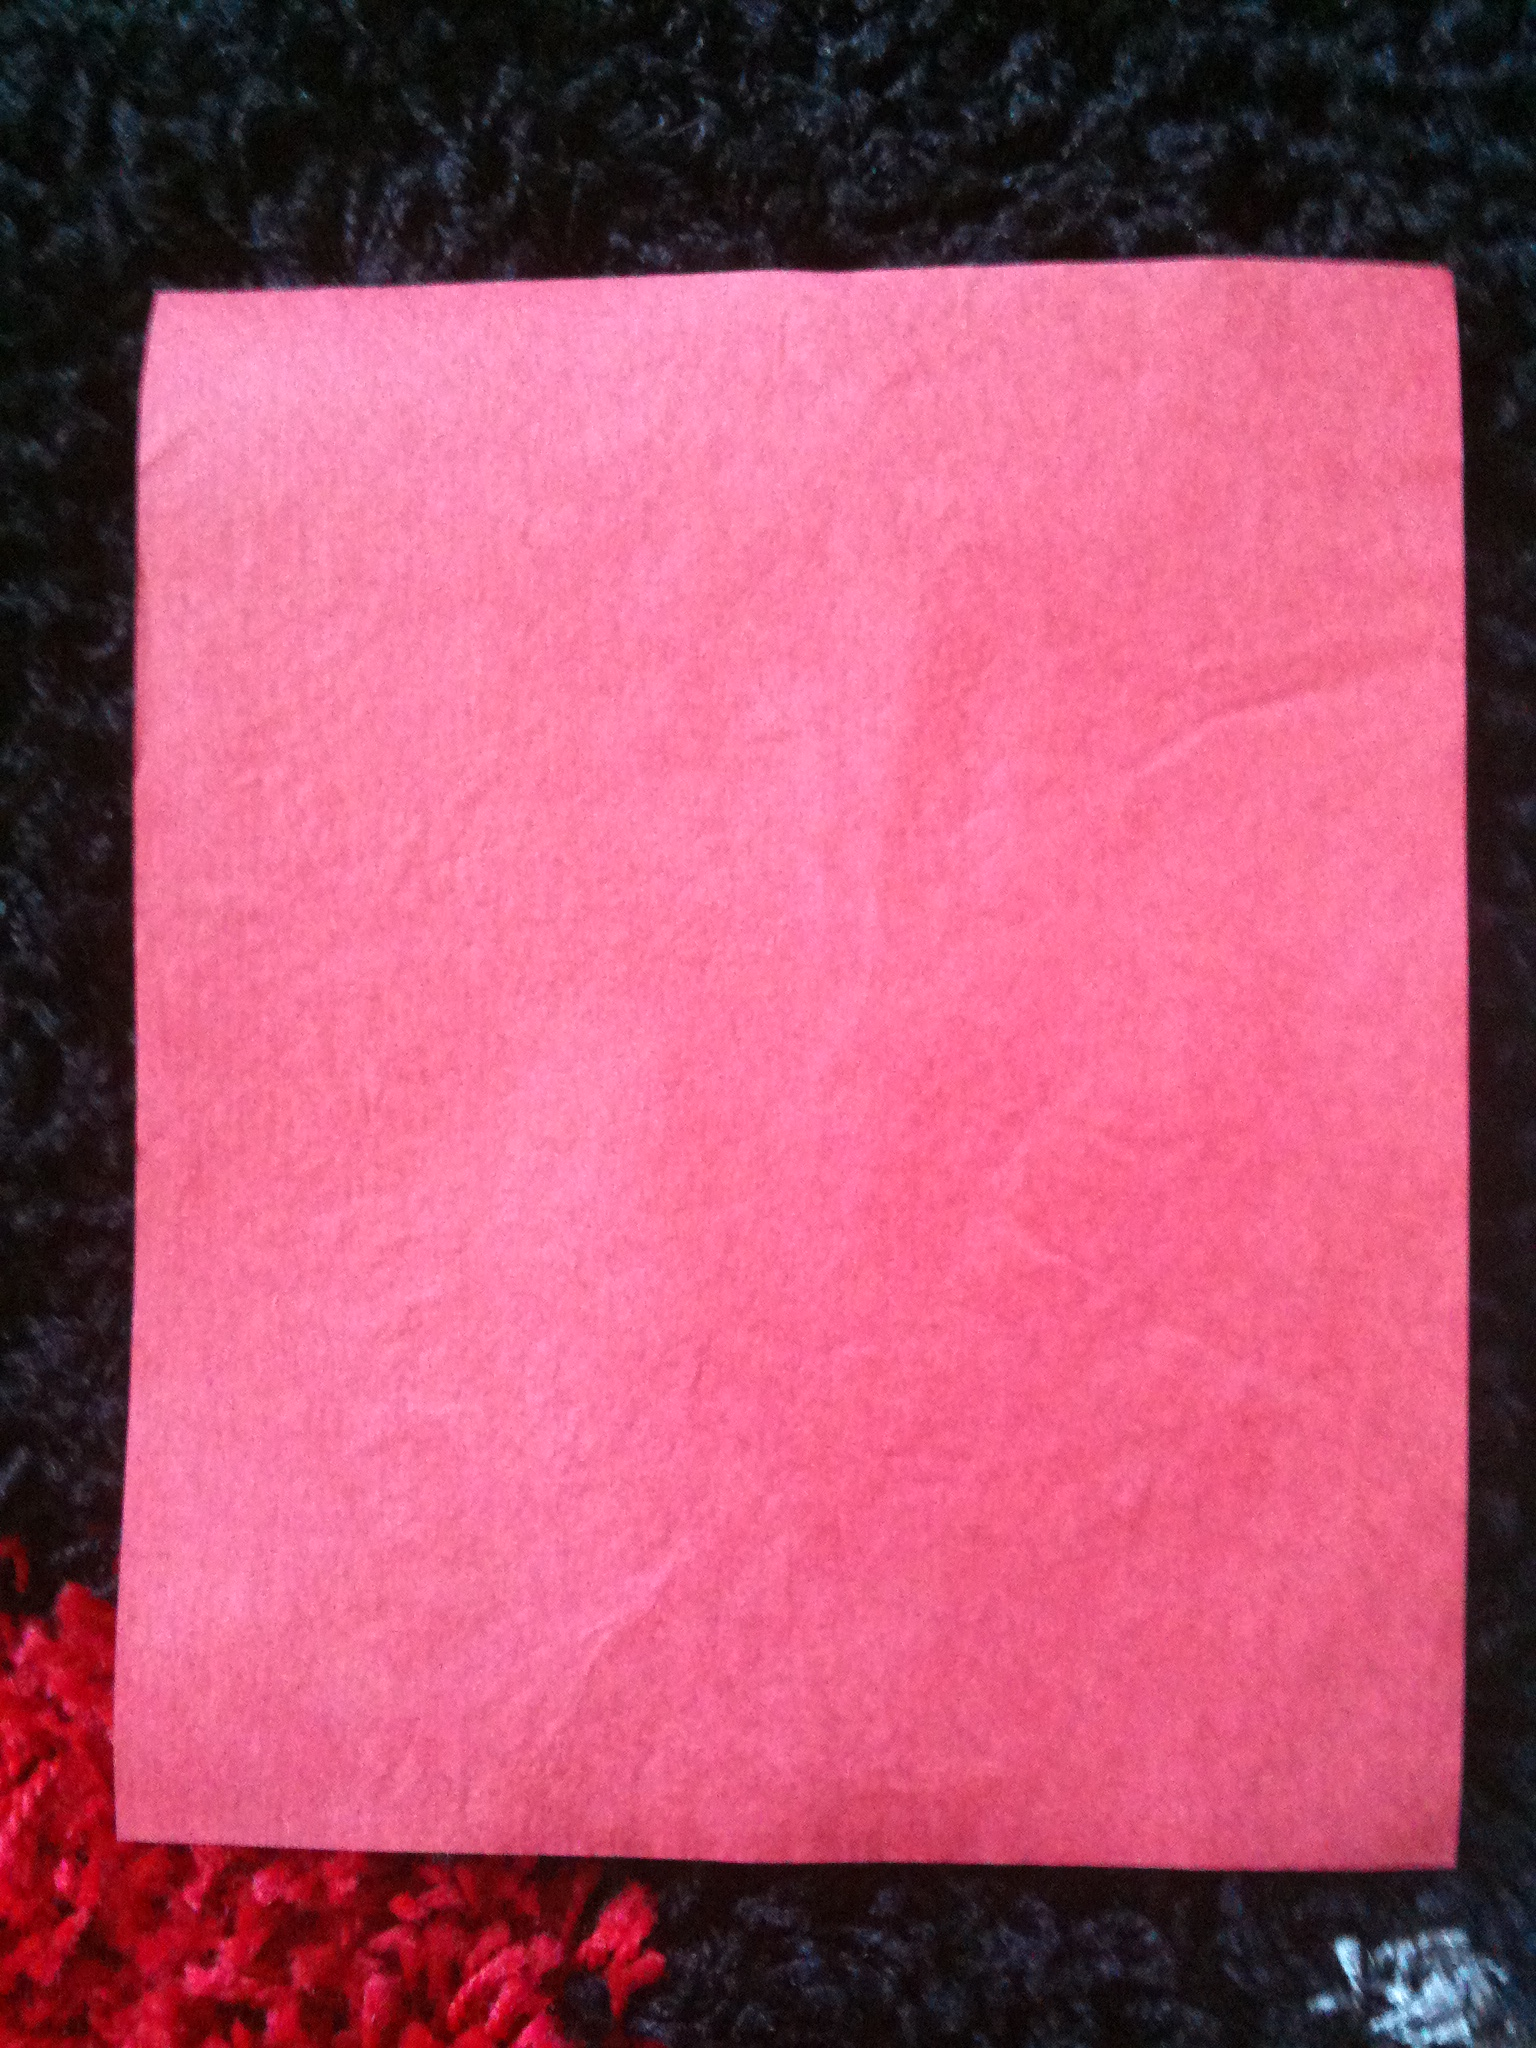 Papier Flash Premium Rouge de 25 x 20 cm